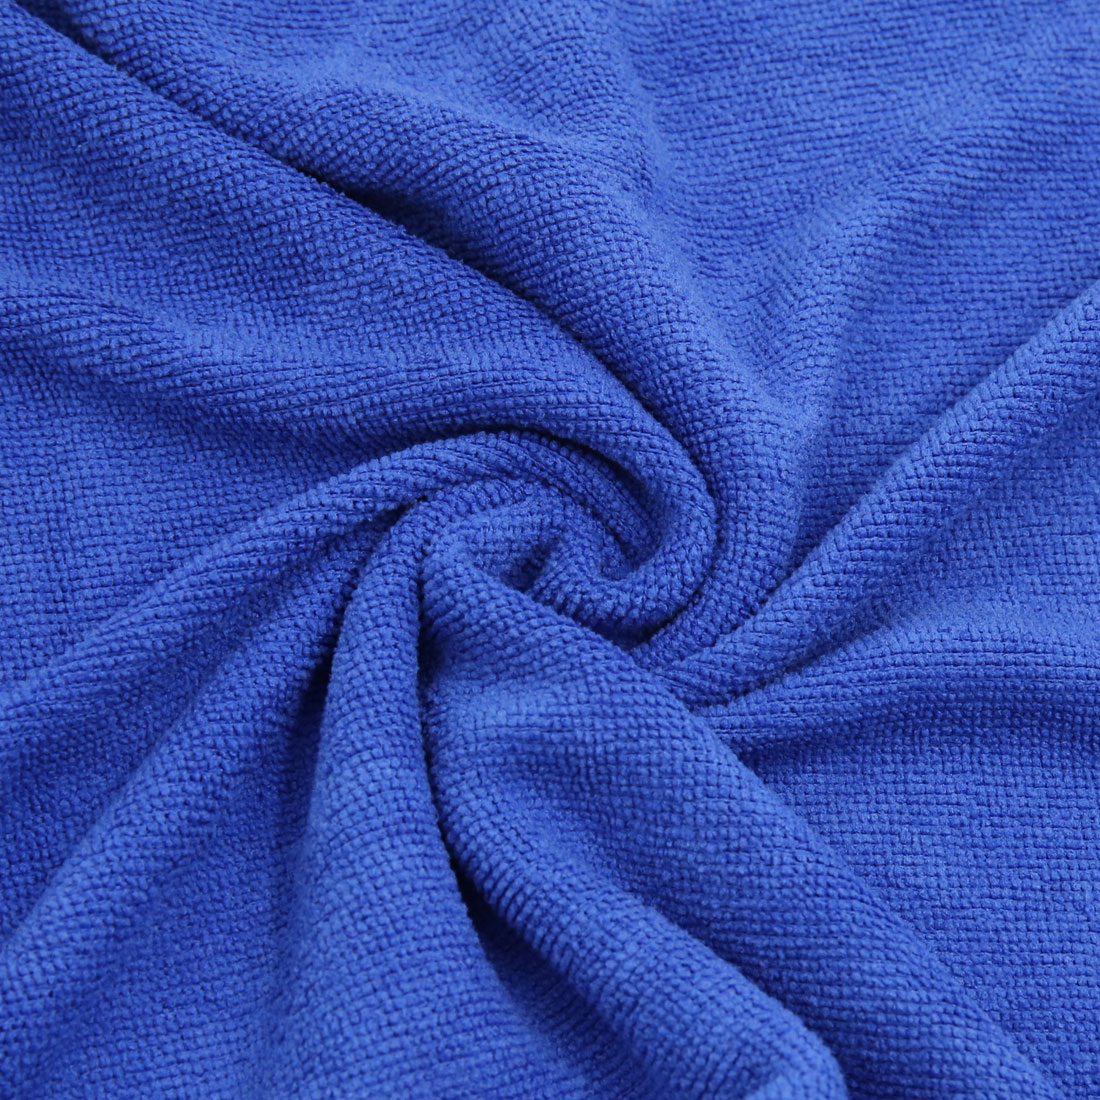 3pcs 250gsm 65 x 33cm Blue Green Coffee Color Microfiber Cleaning Towel for Car - image 4 of 7